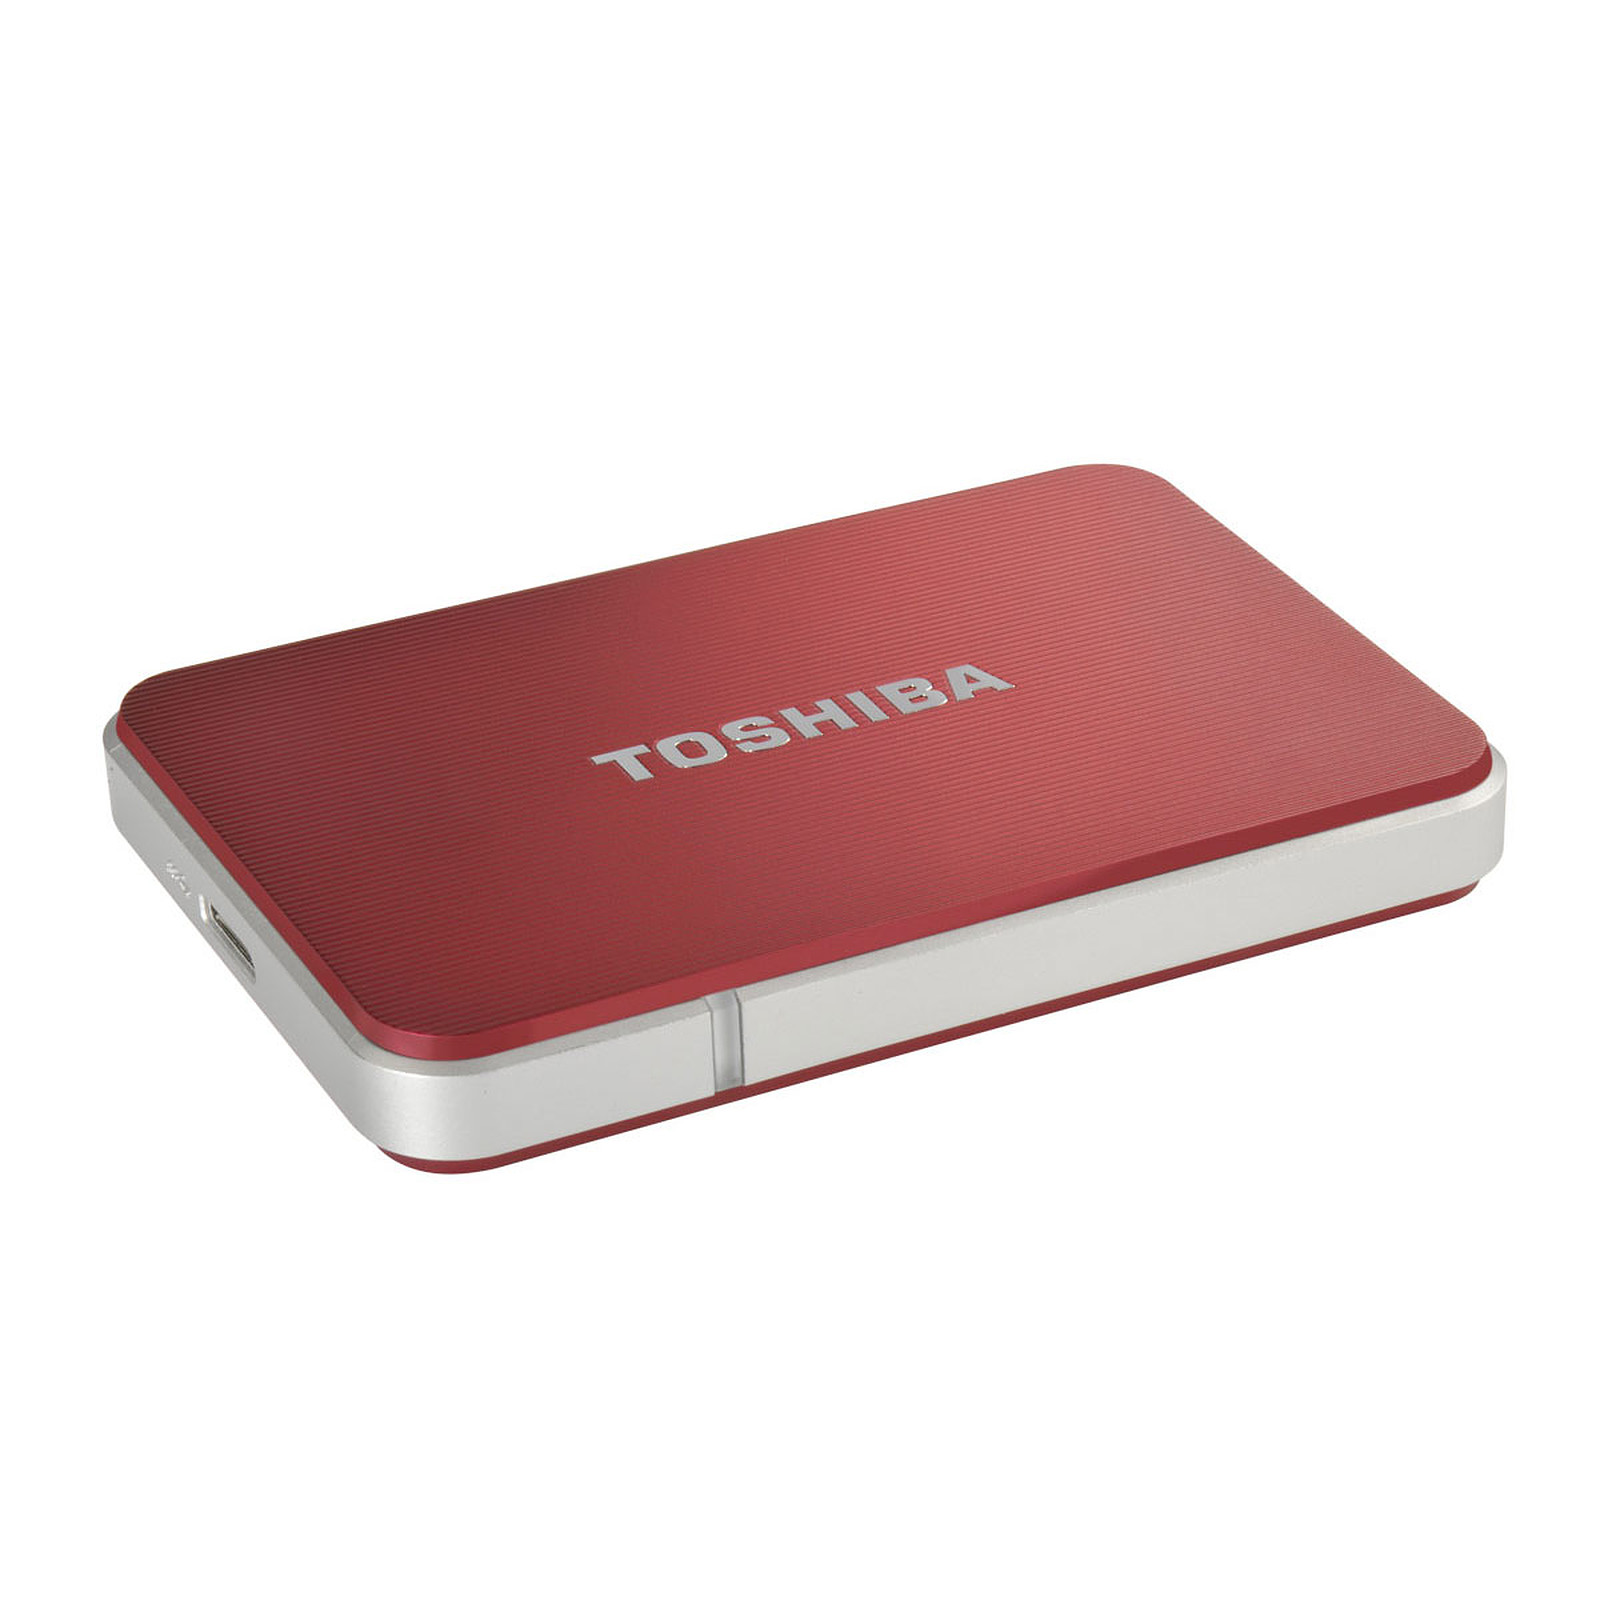 Toshiba Store Edition 1 To Rouge